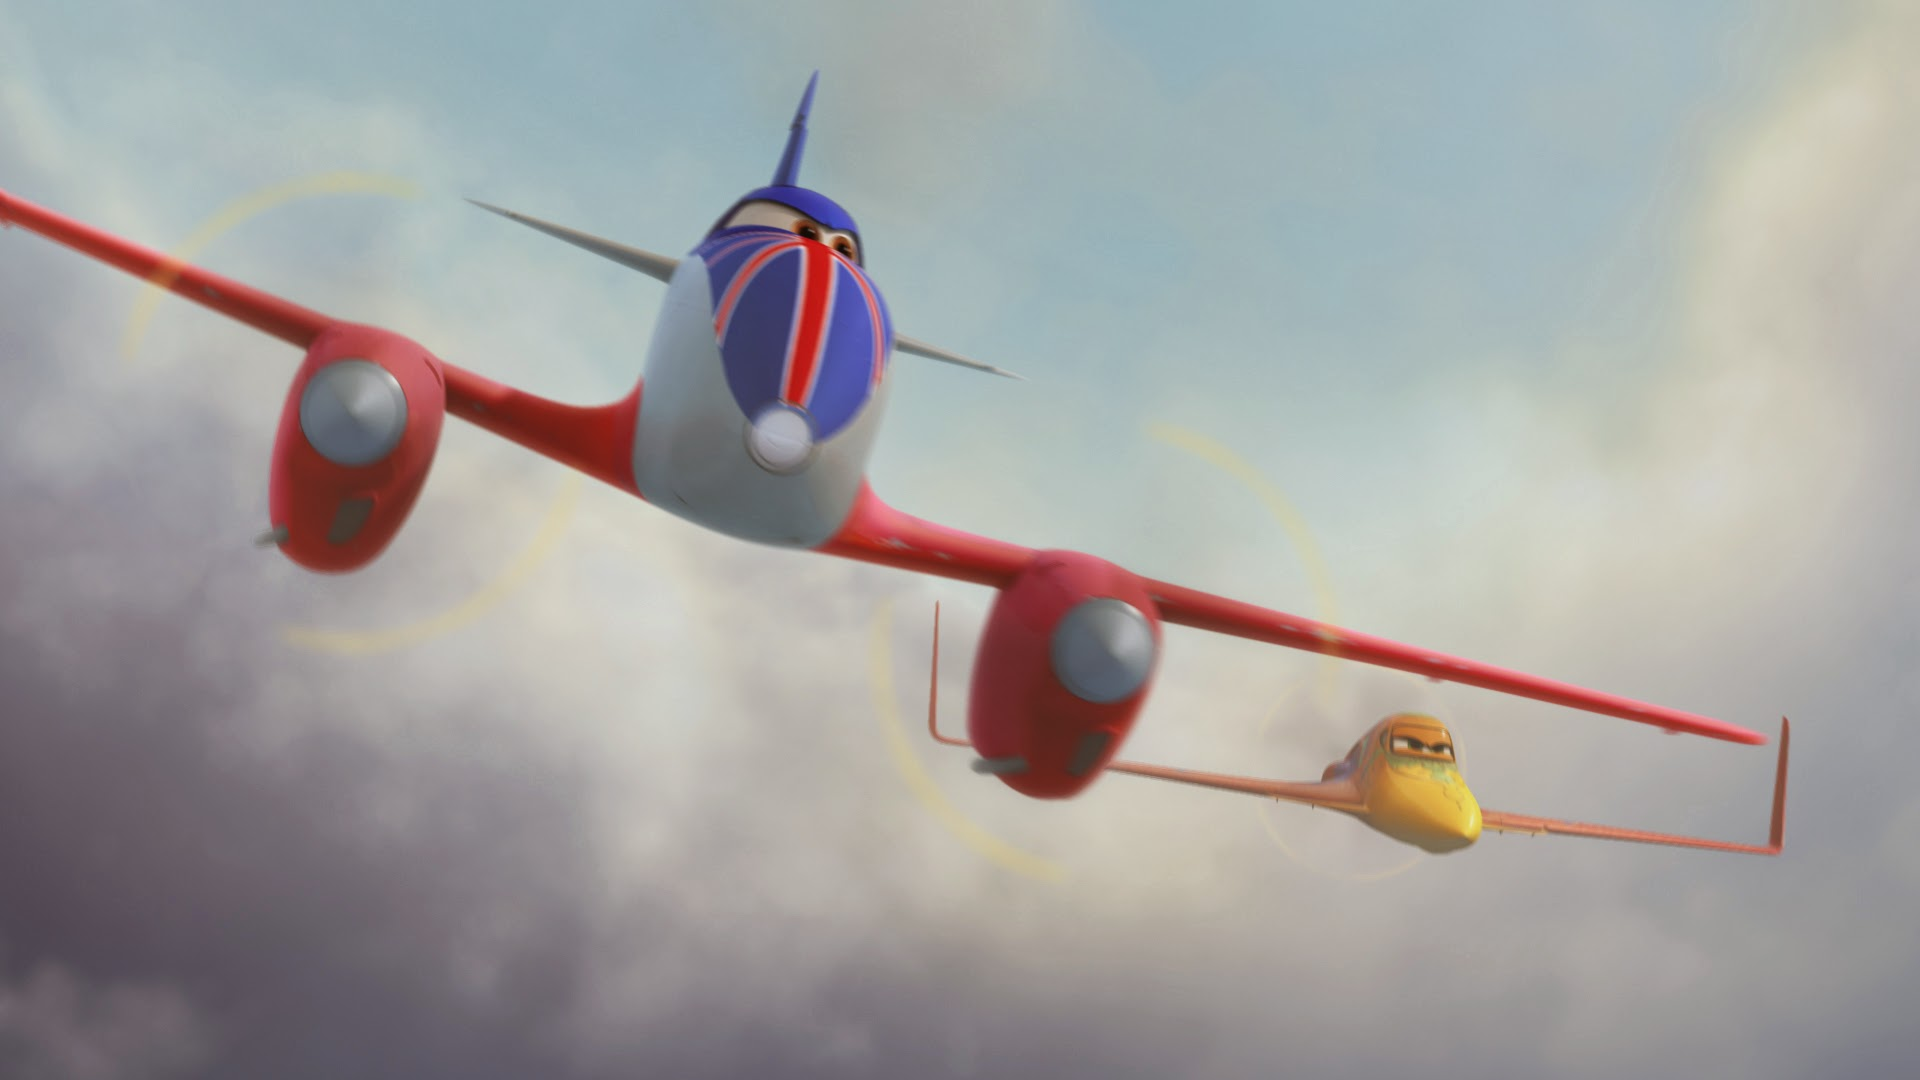 Disney Planes 1920x1080 HD Wallpapers 09 including disney planes ripslinger coloring pages 1 on disney planes ripslinger coloring pages in addition disney planes coloring pages on disney planes ripslinger coloring pages as well as disney planes ripslinger coloring pages 3 on disney planes ripslinger coloring pages likewise disney planes ripslinger coloring pages 4 on disney planes ripslinger coloring pages